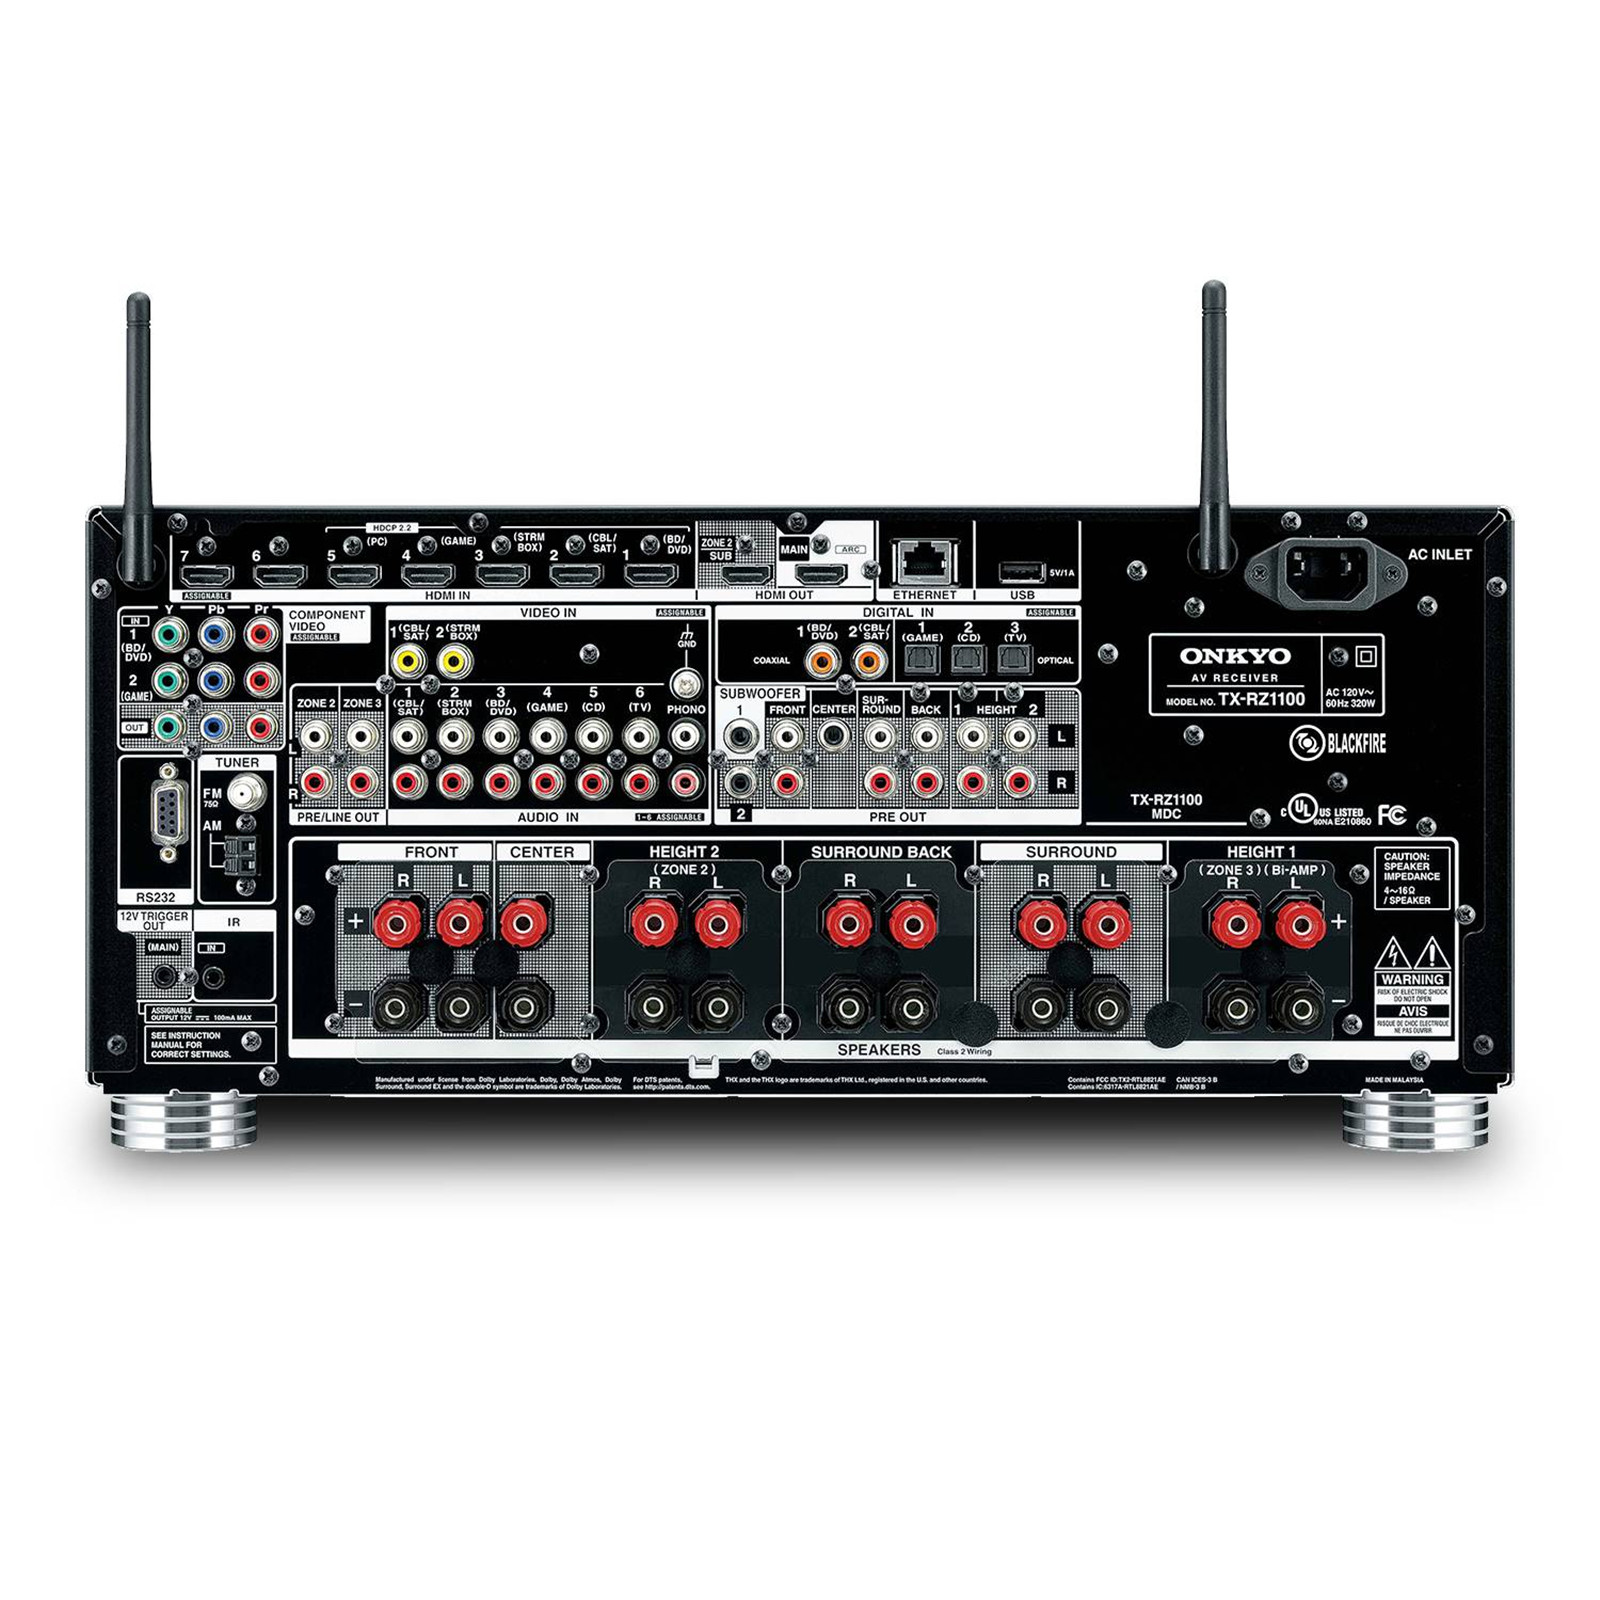 Buy the Onkyo TX-RZ1100 9 2 Channel AV Receiver 3 Zone - DTS